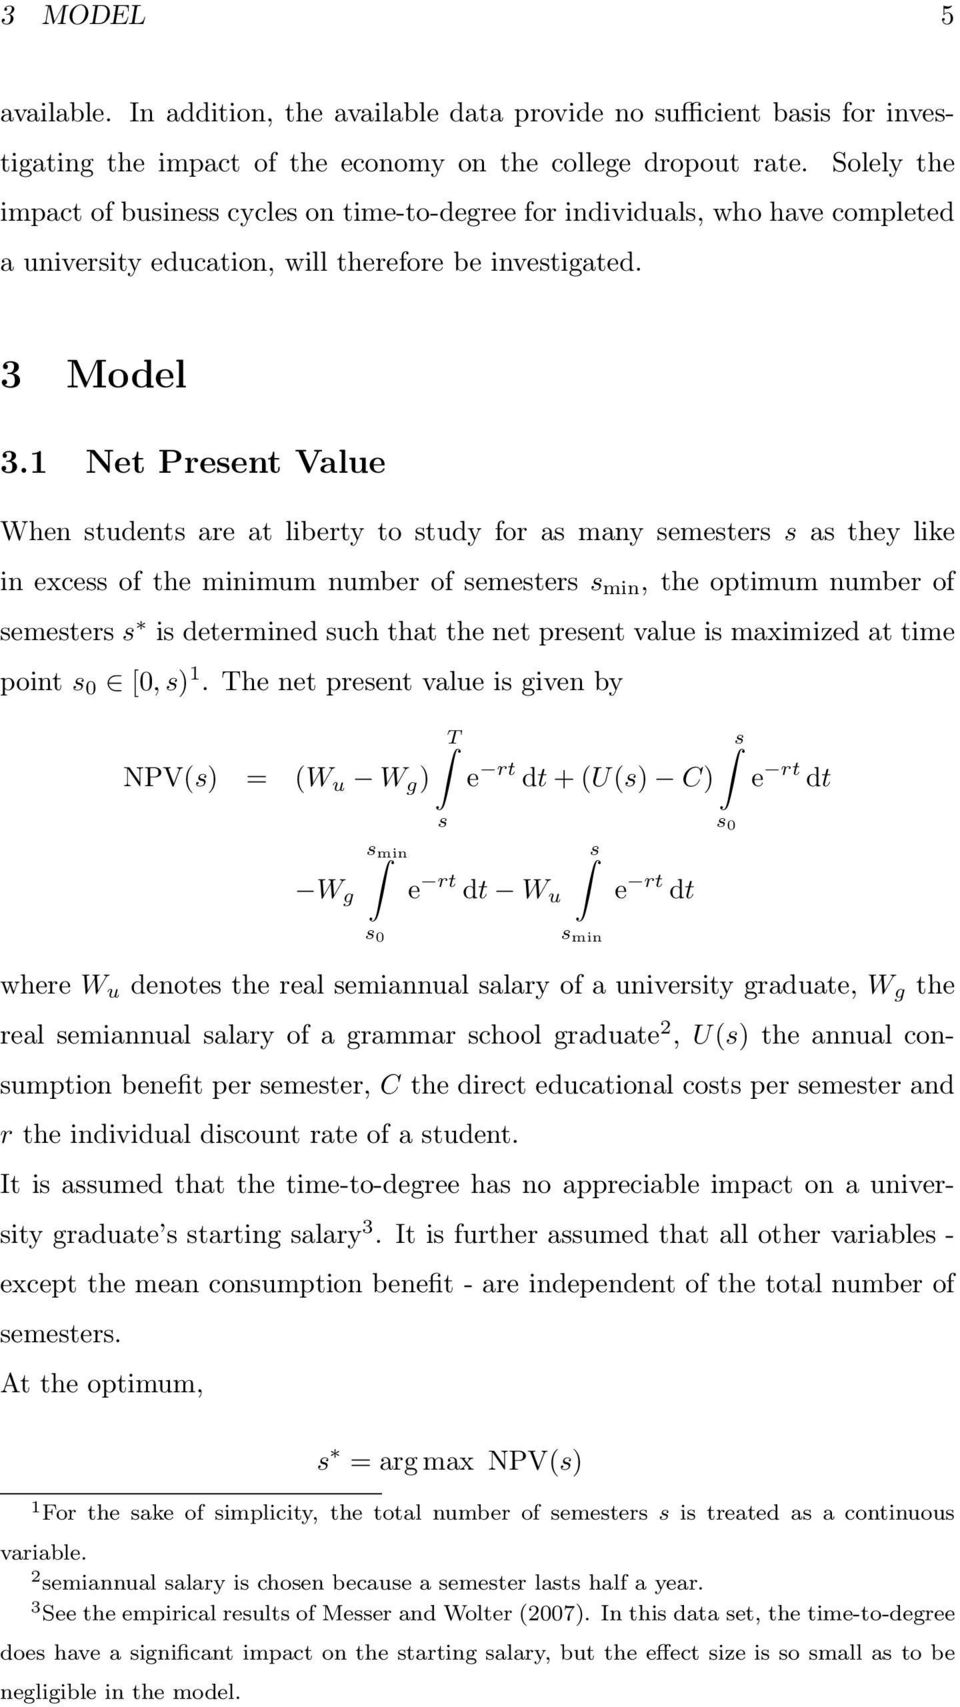 1 Net Present Value When students are at liberty to study for as many semesters s as they like in excess of the minimum number of semesters s min, the optimum number of semesters s is determined such